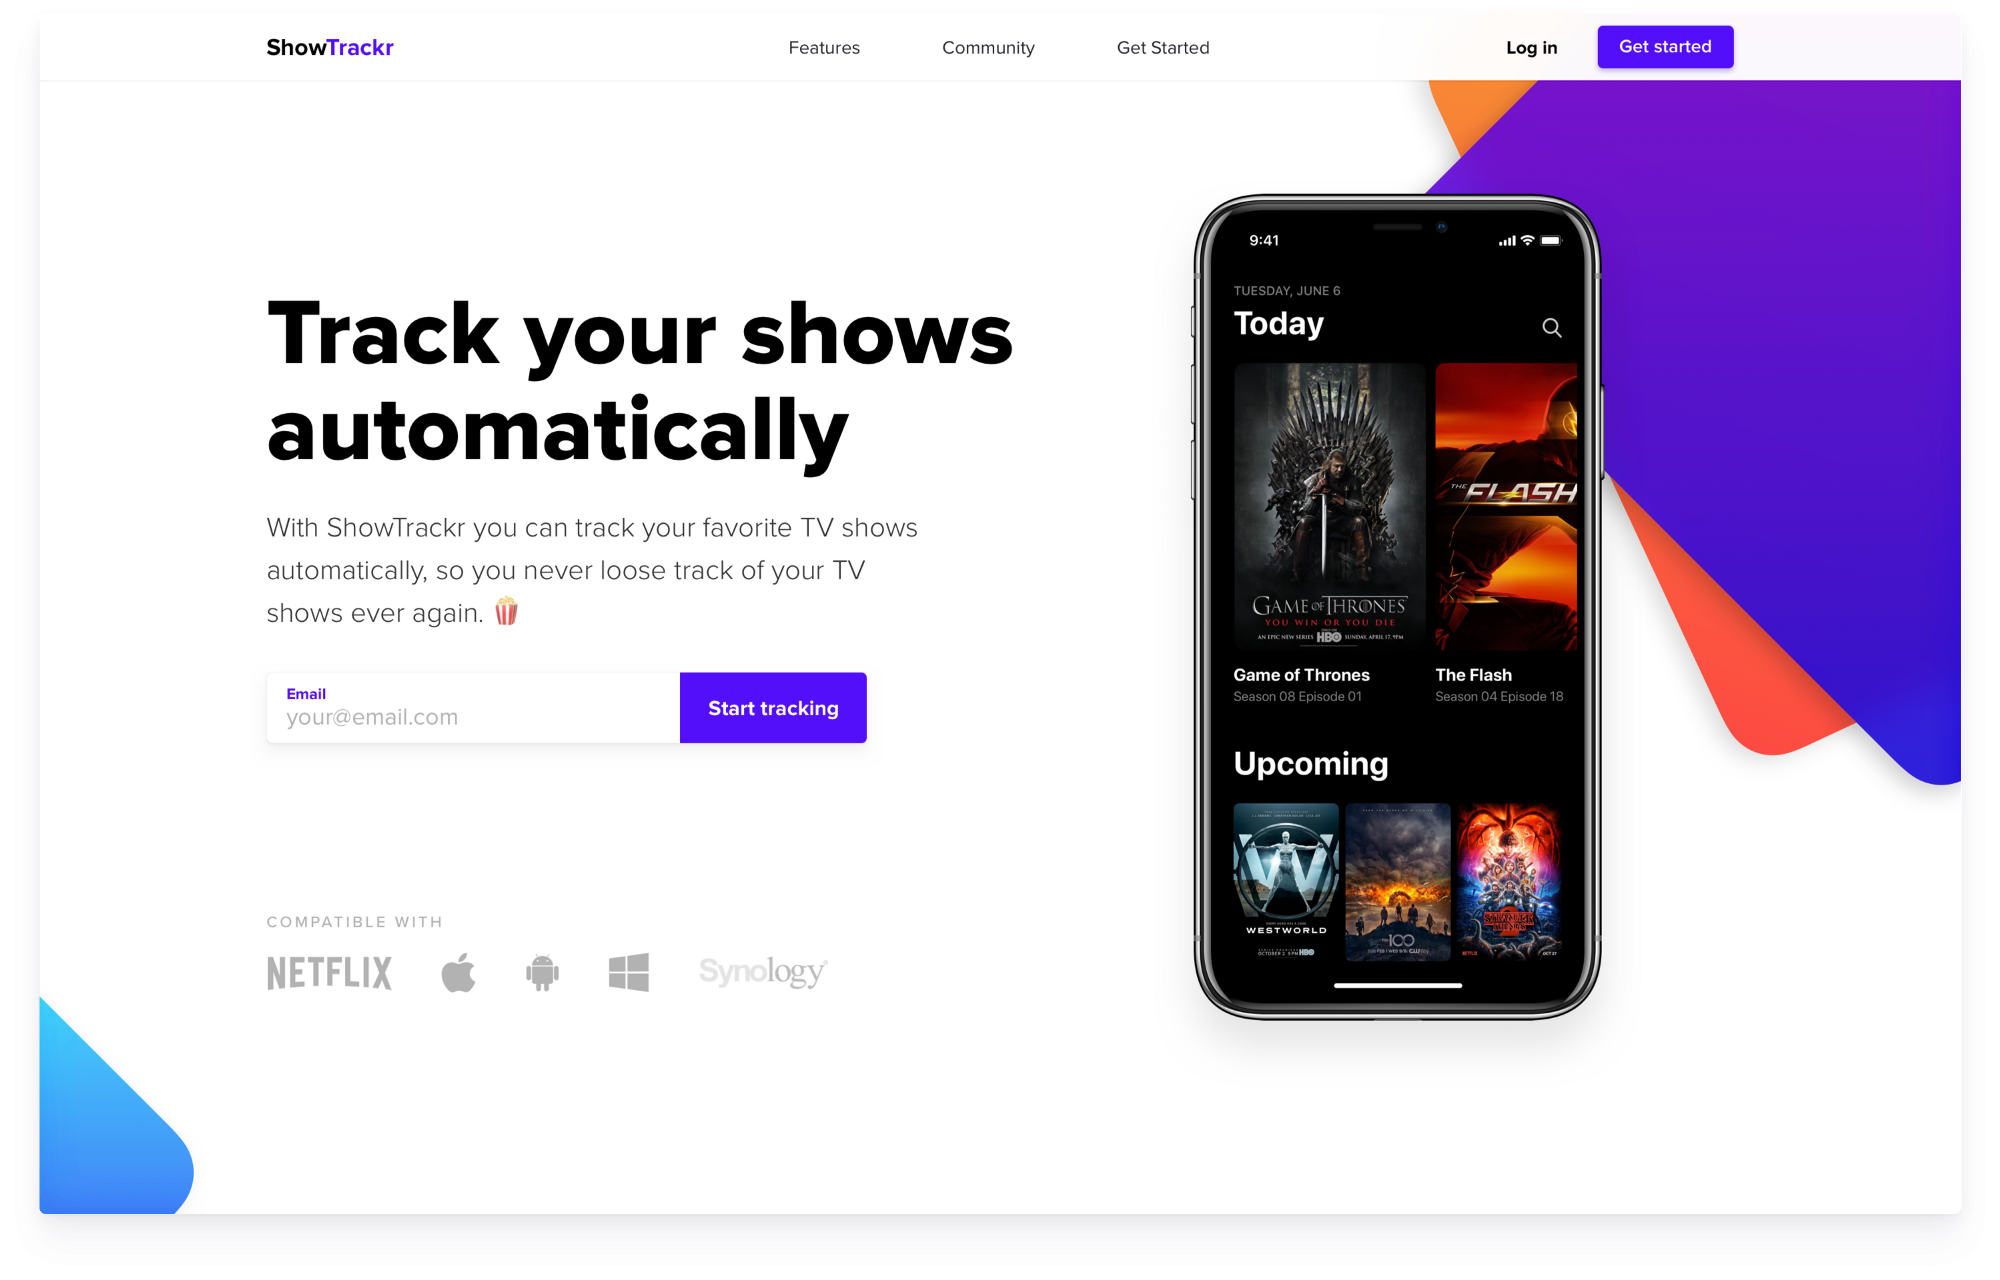 ShowTrackr - a case study for creating a landing page optimized for conversions